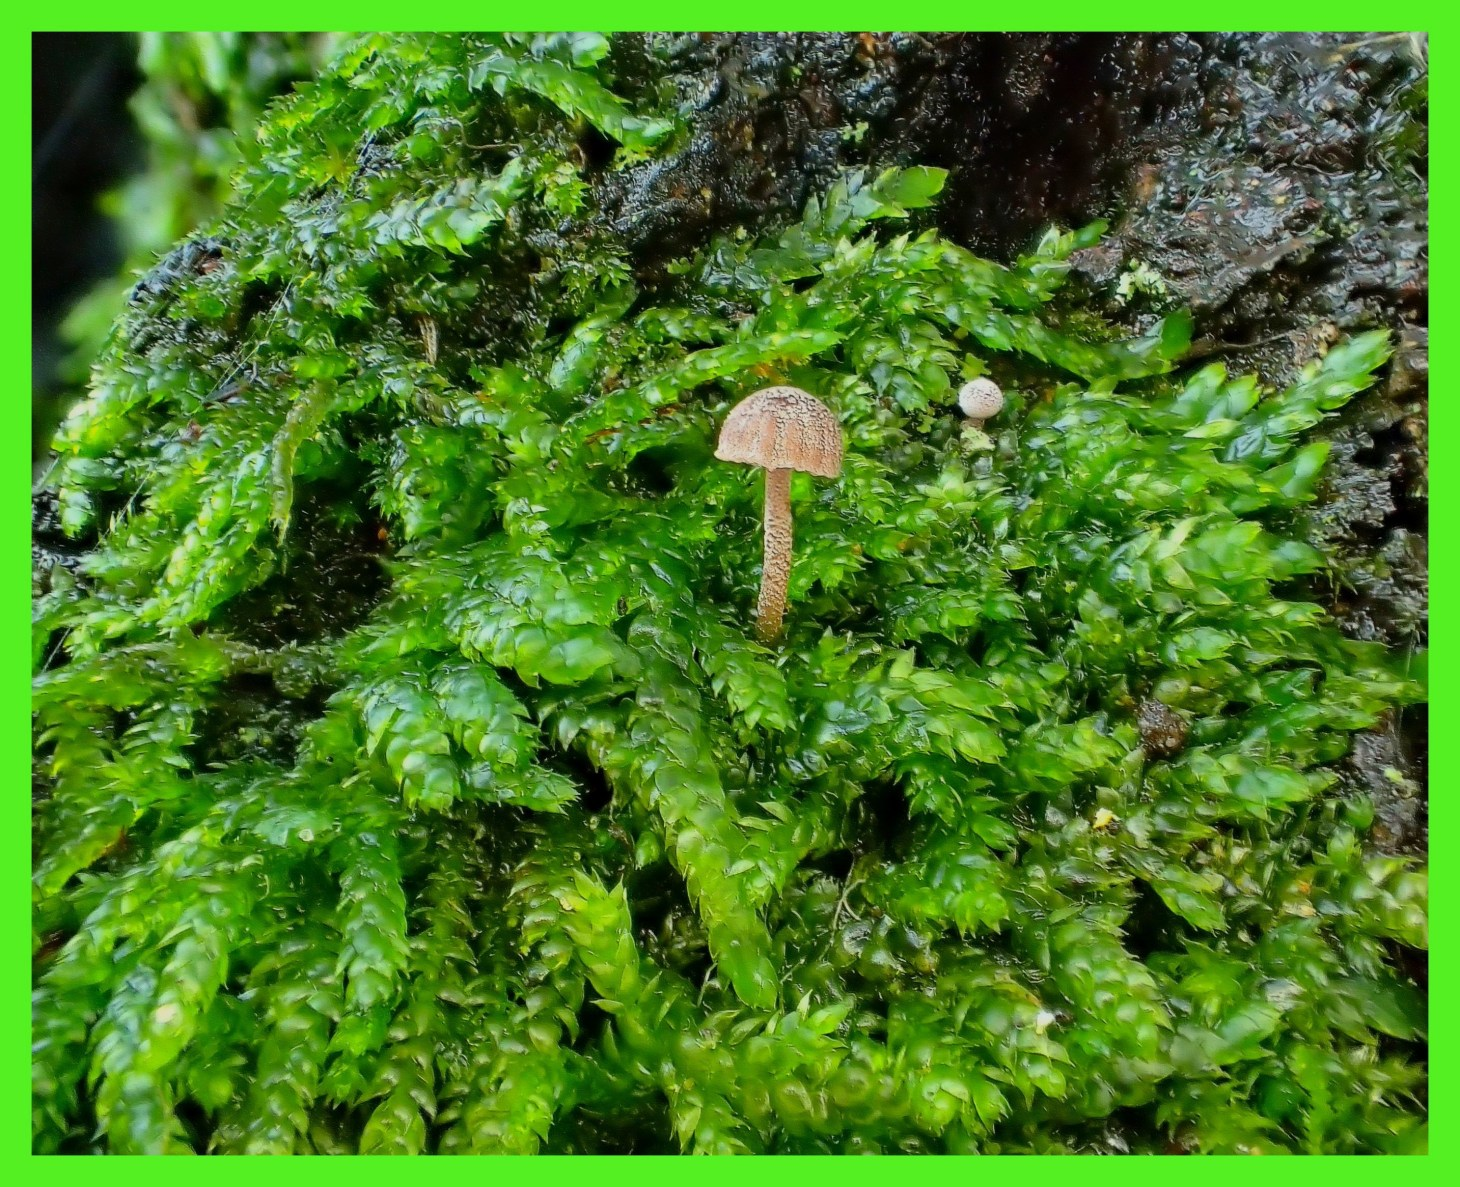 Micro-mushrooms in Moss. (1) Photo by Thomas Peace c. 2015